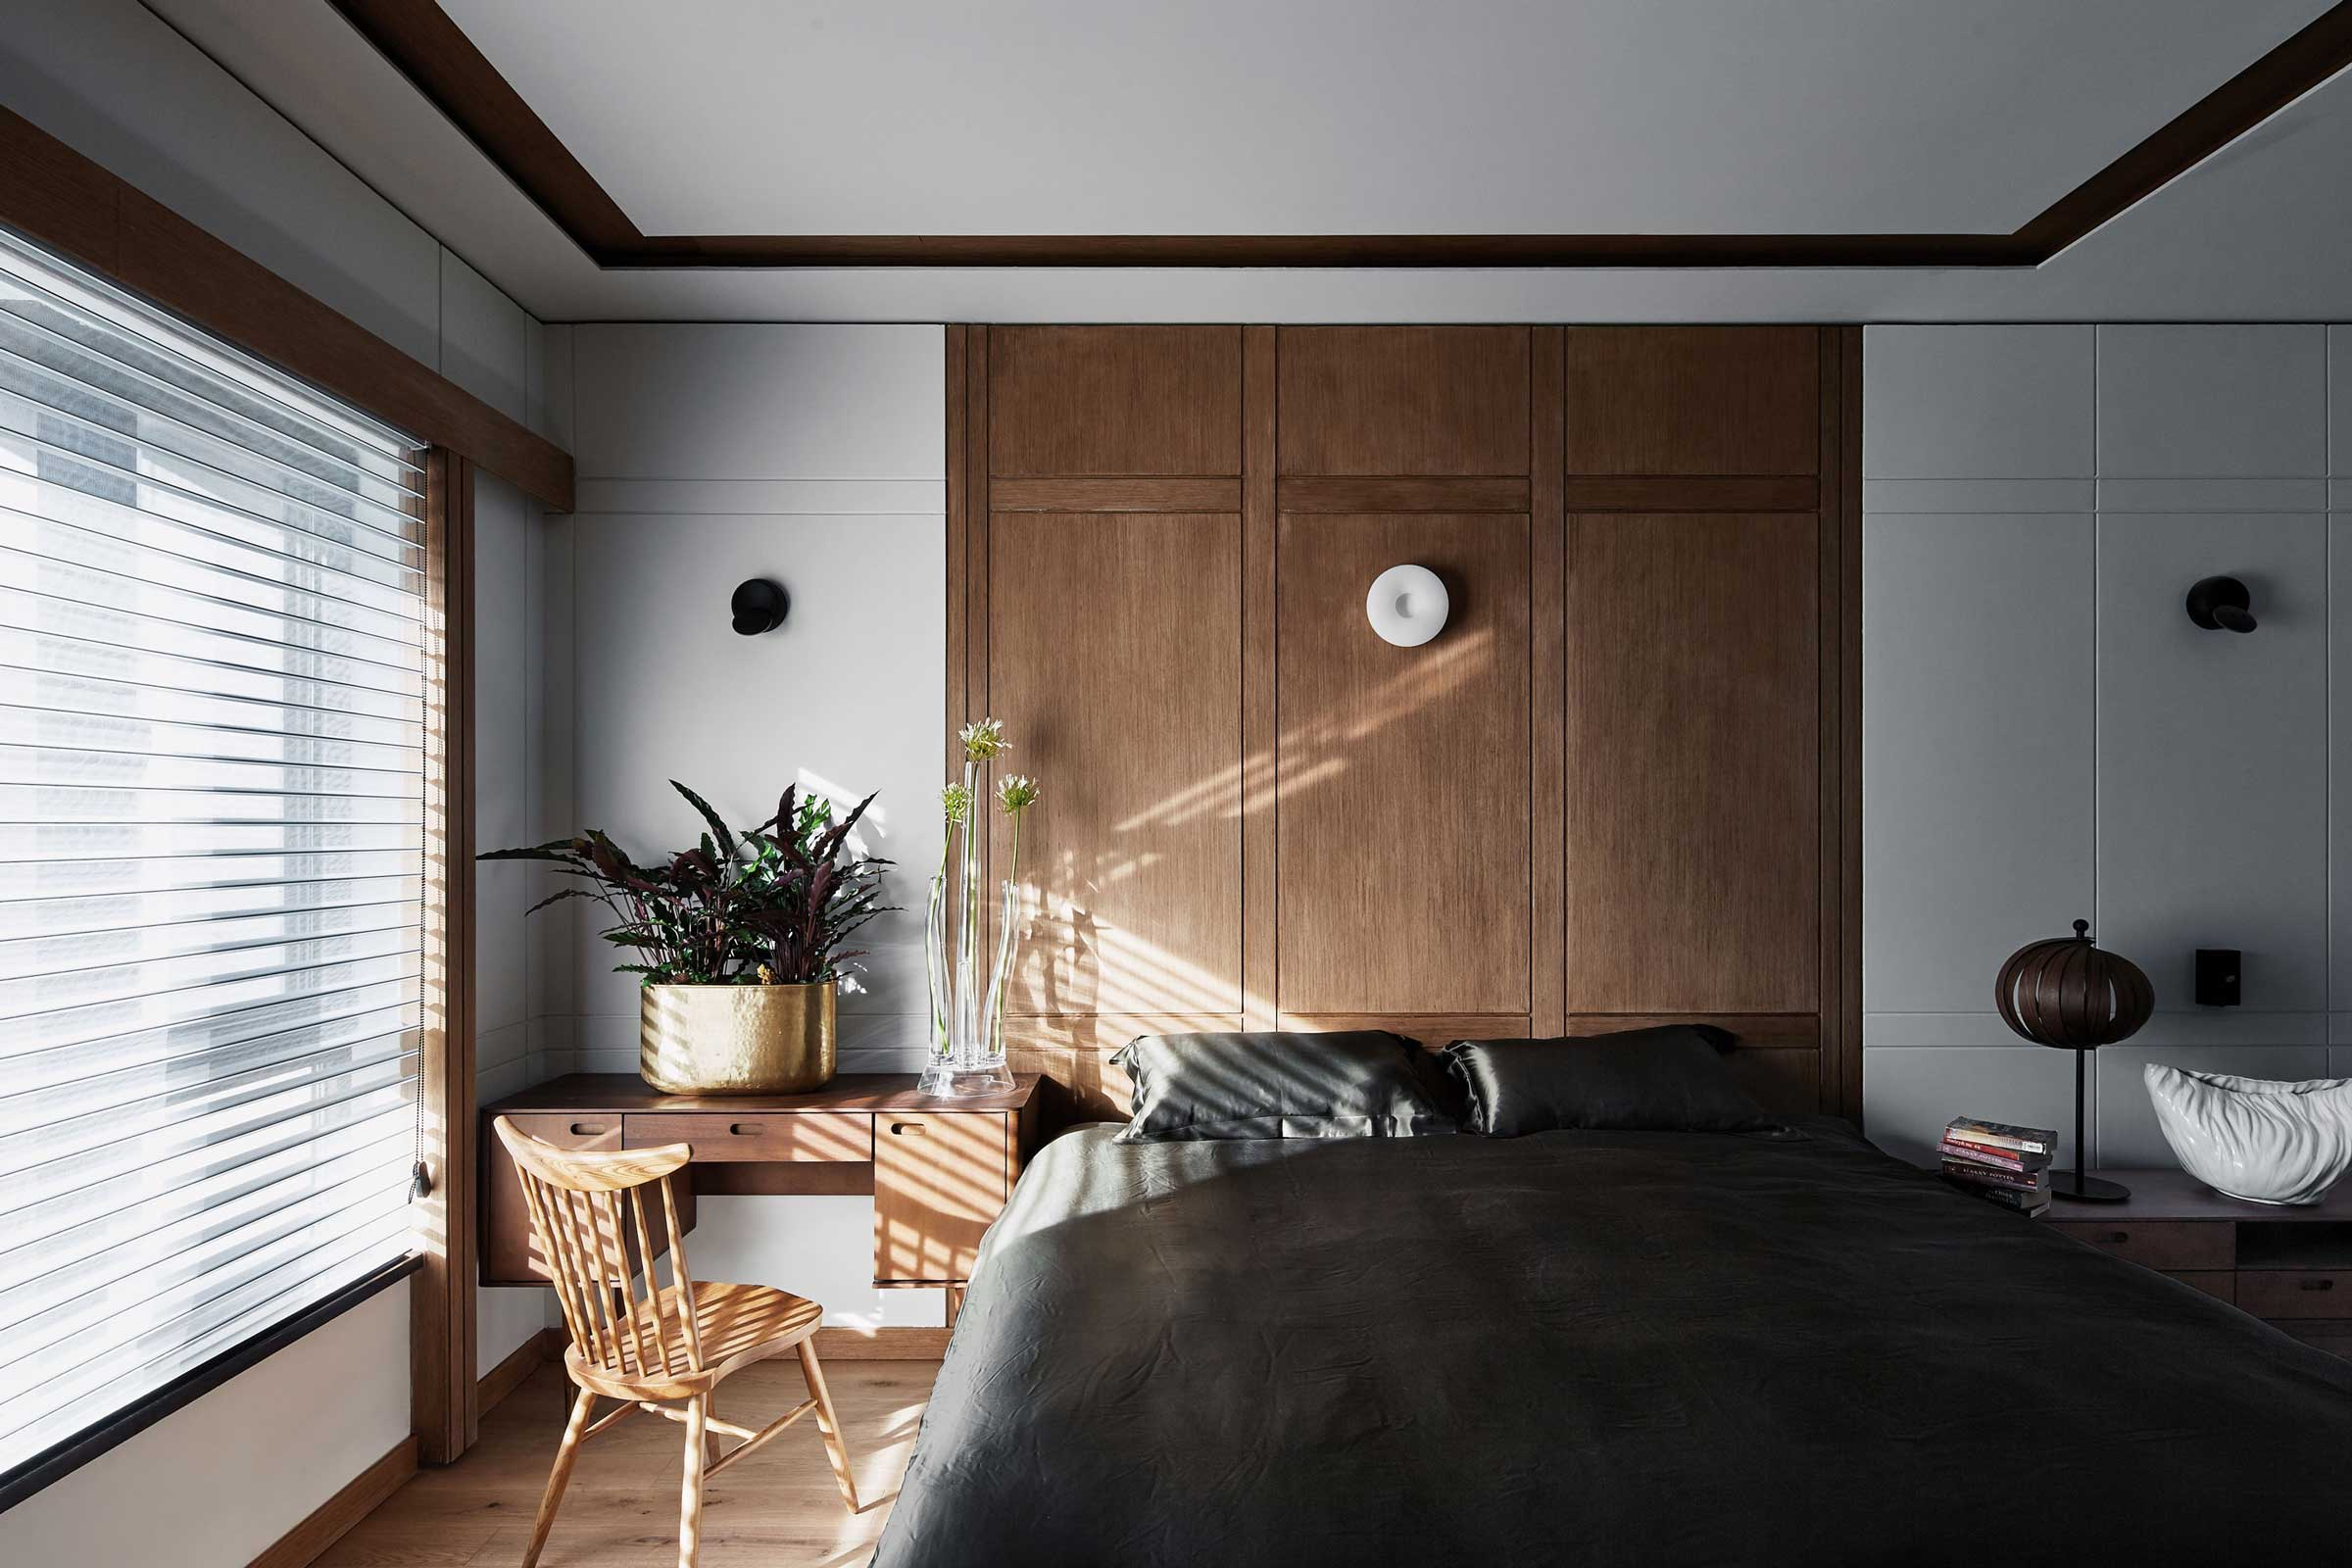 lane-house-ARCHISTRY-nolan-chao-05-bed-room.jpg